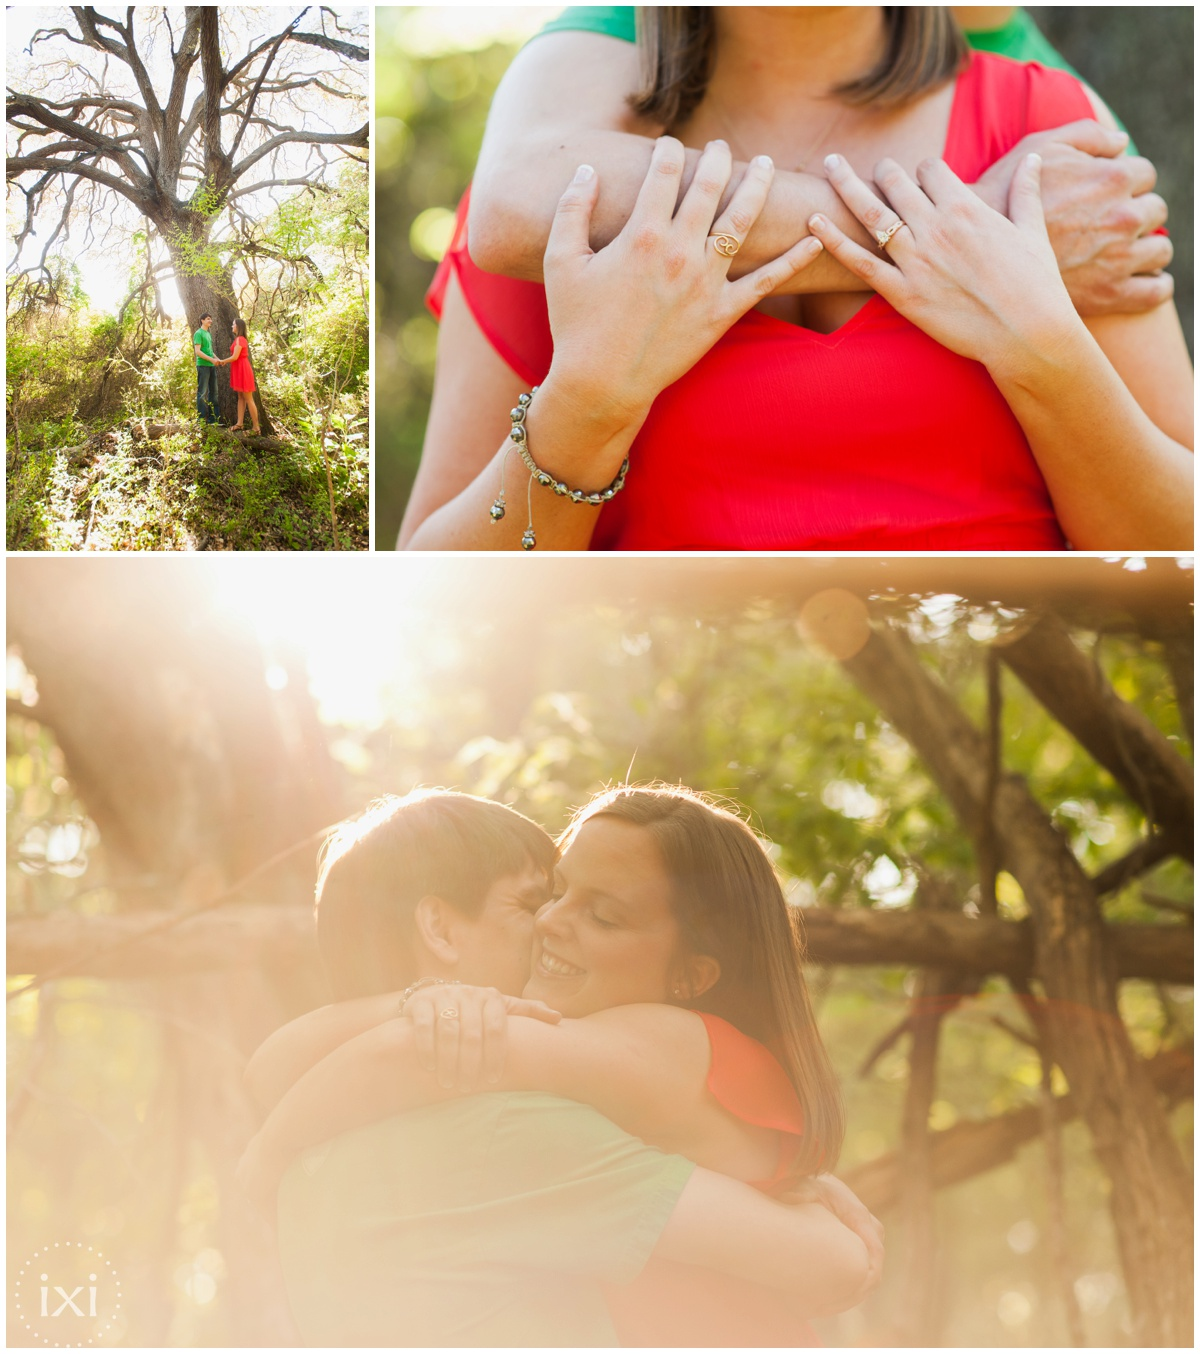 mary-moore-searight-park-austin-engagement-photos_0000